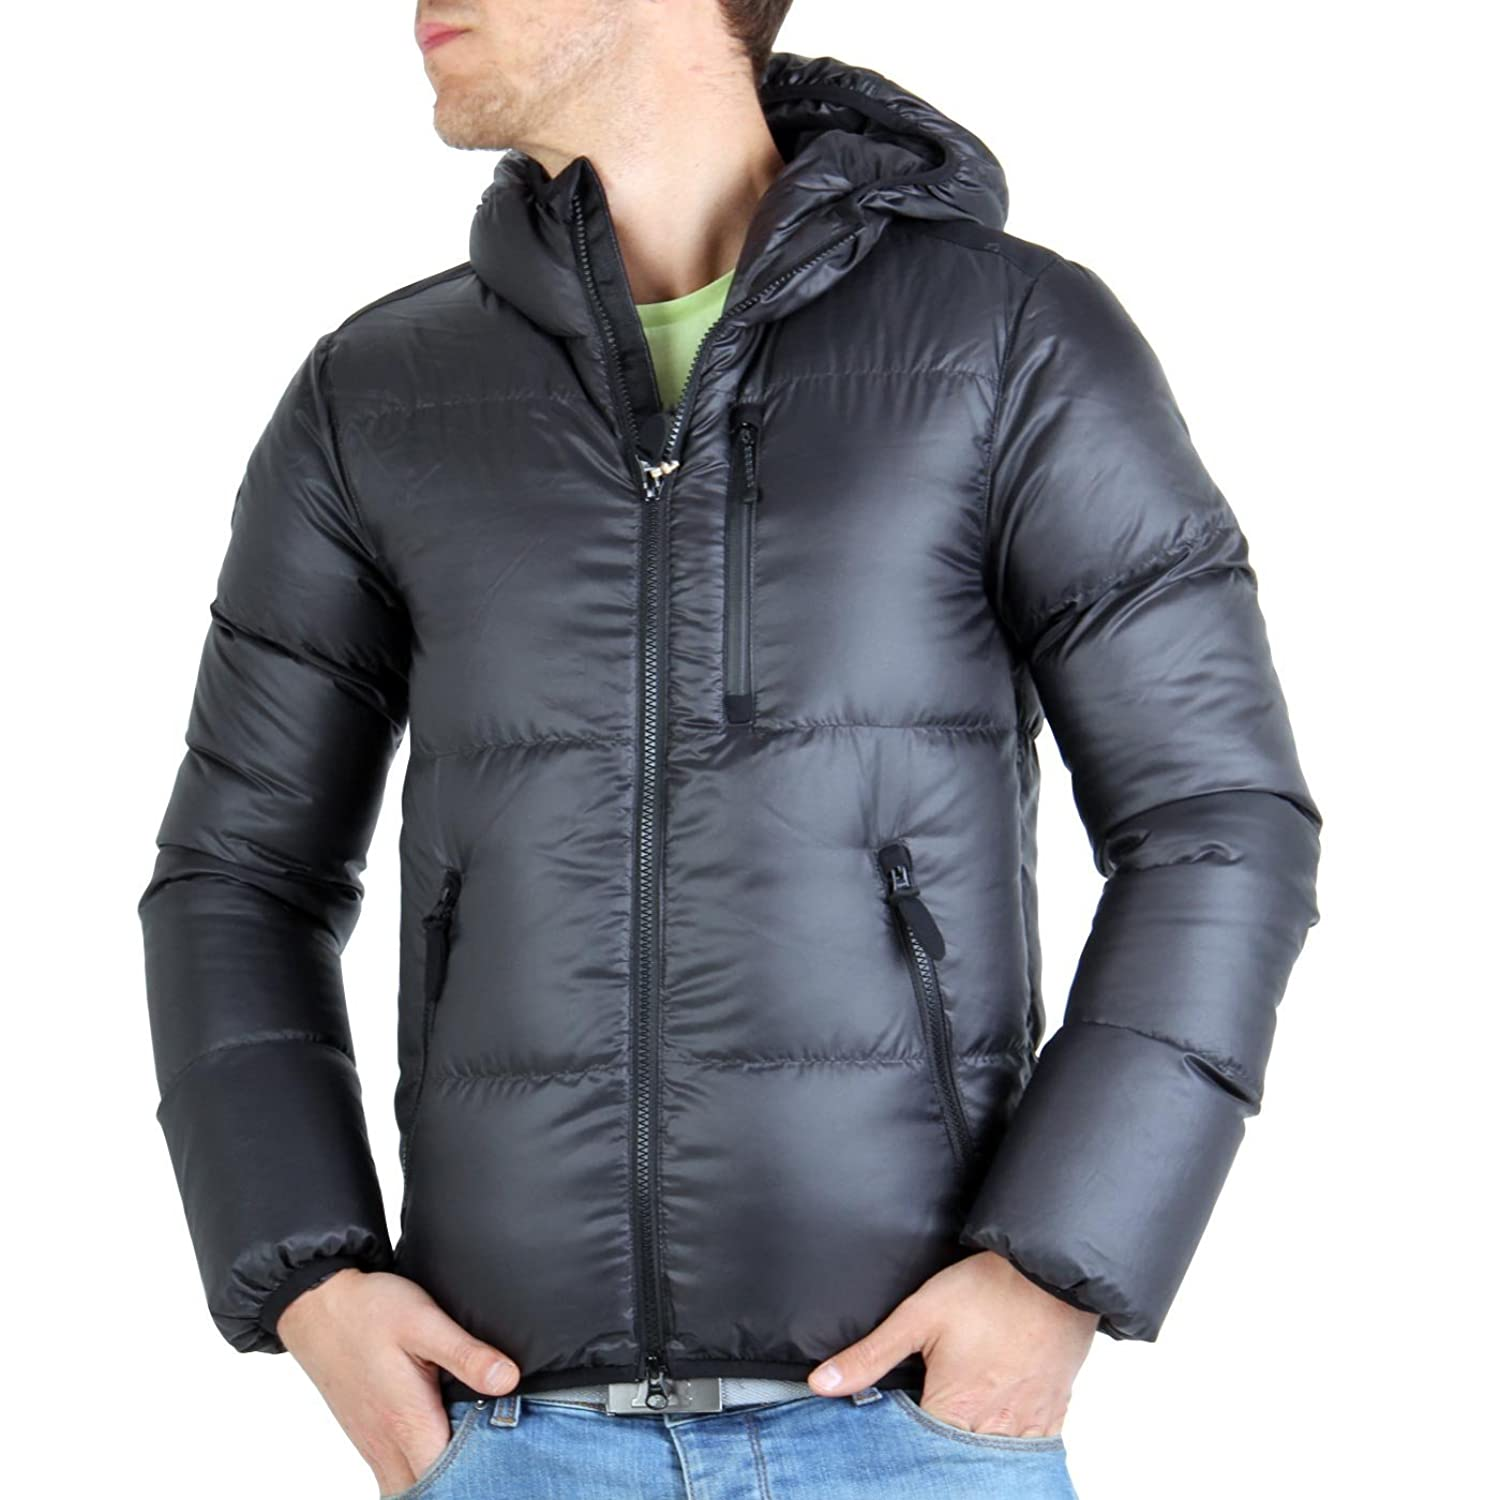 MUSEUM Herren Winter Daunenjacke Air Granit Black MU21575